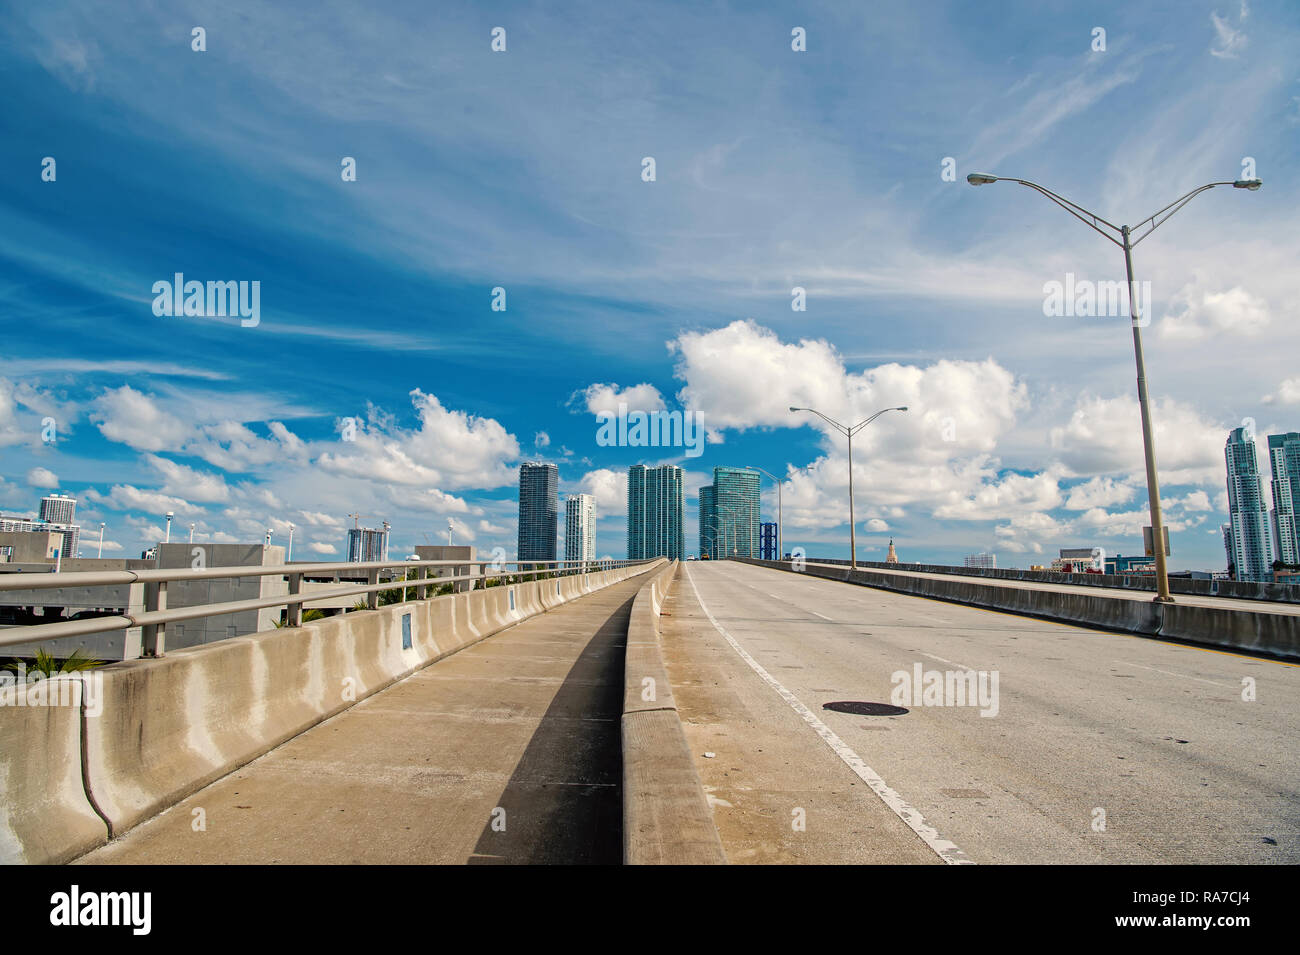 miami highway or public road roadway for transport vehicles and urban skyscrapers on cloudy blue sky background next to the port, miami dade - Stock Image